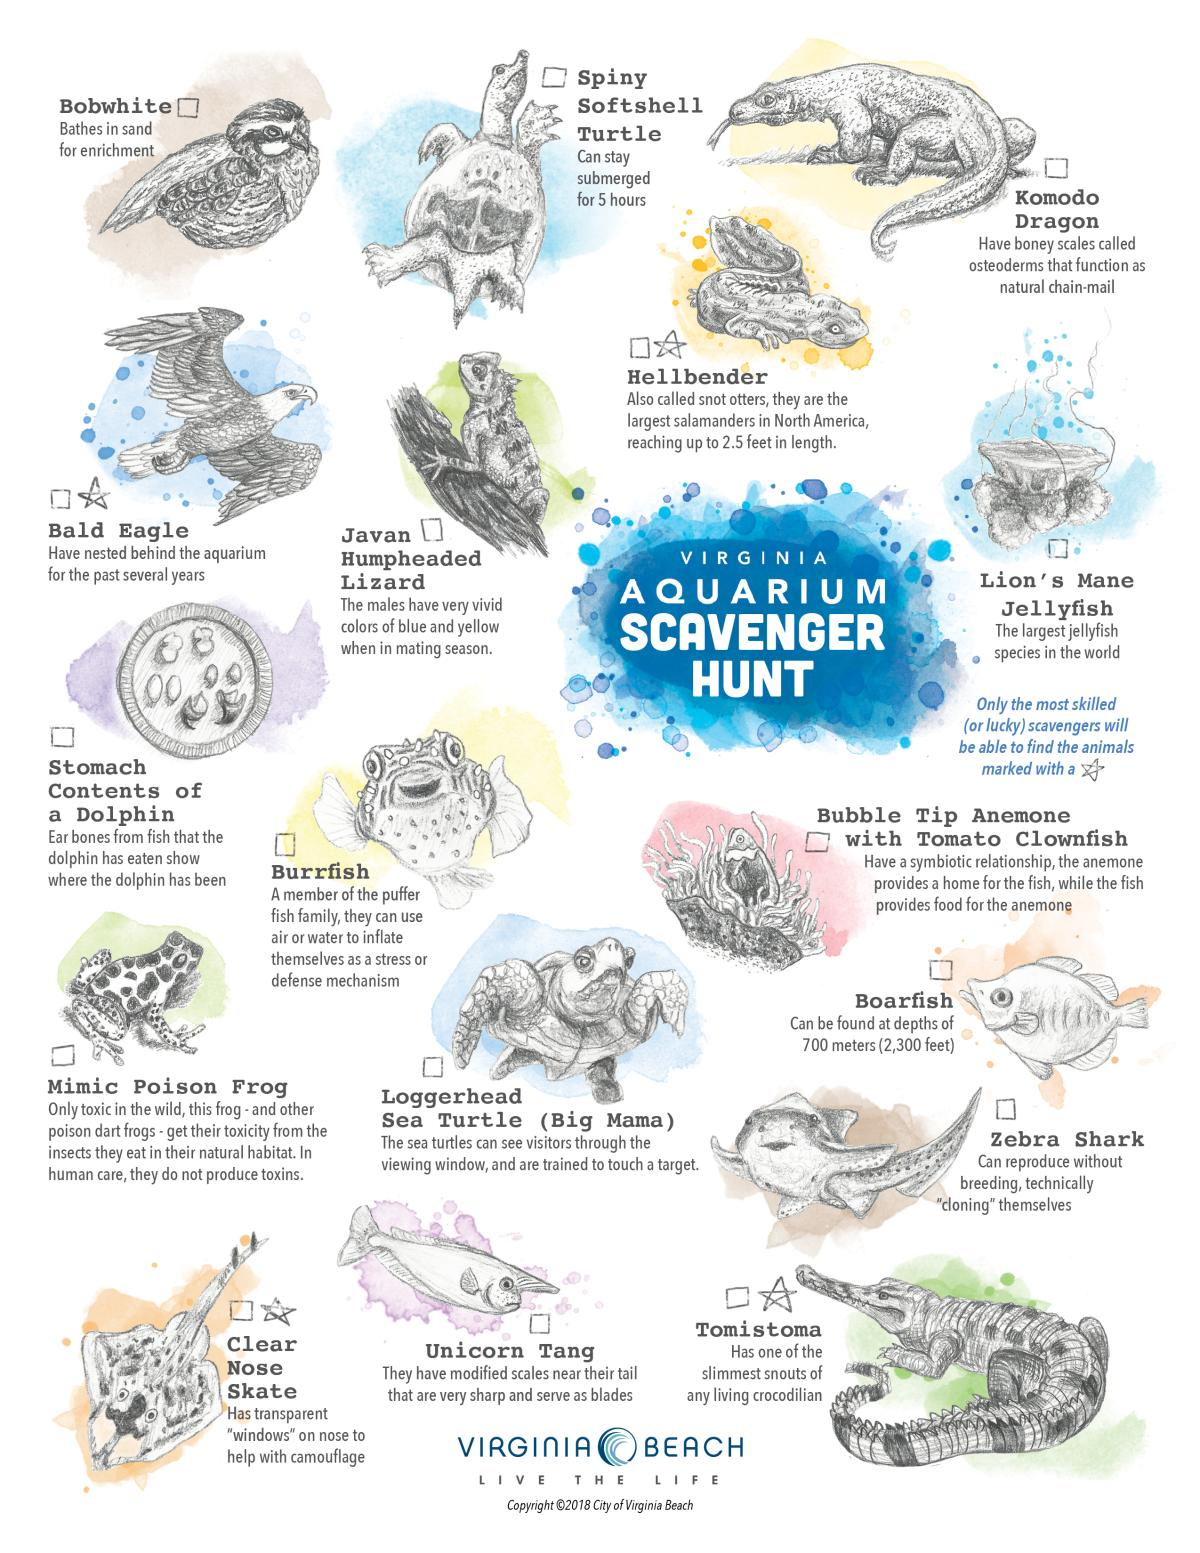 Animals/species to find on Virginia Aquarium Scavenger Hunt